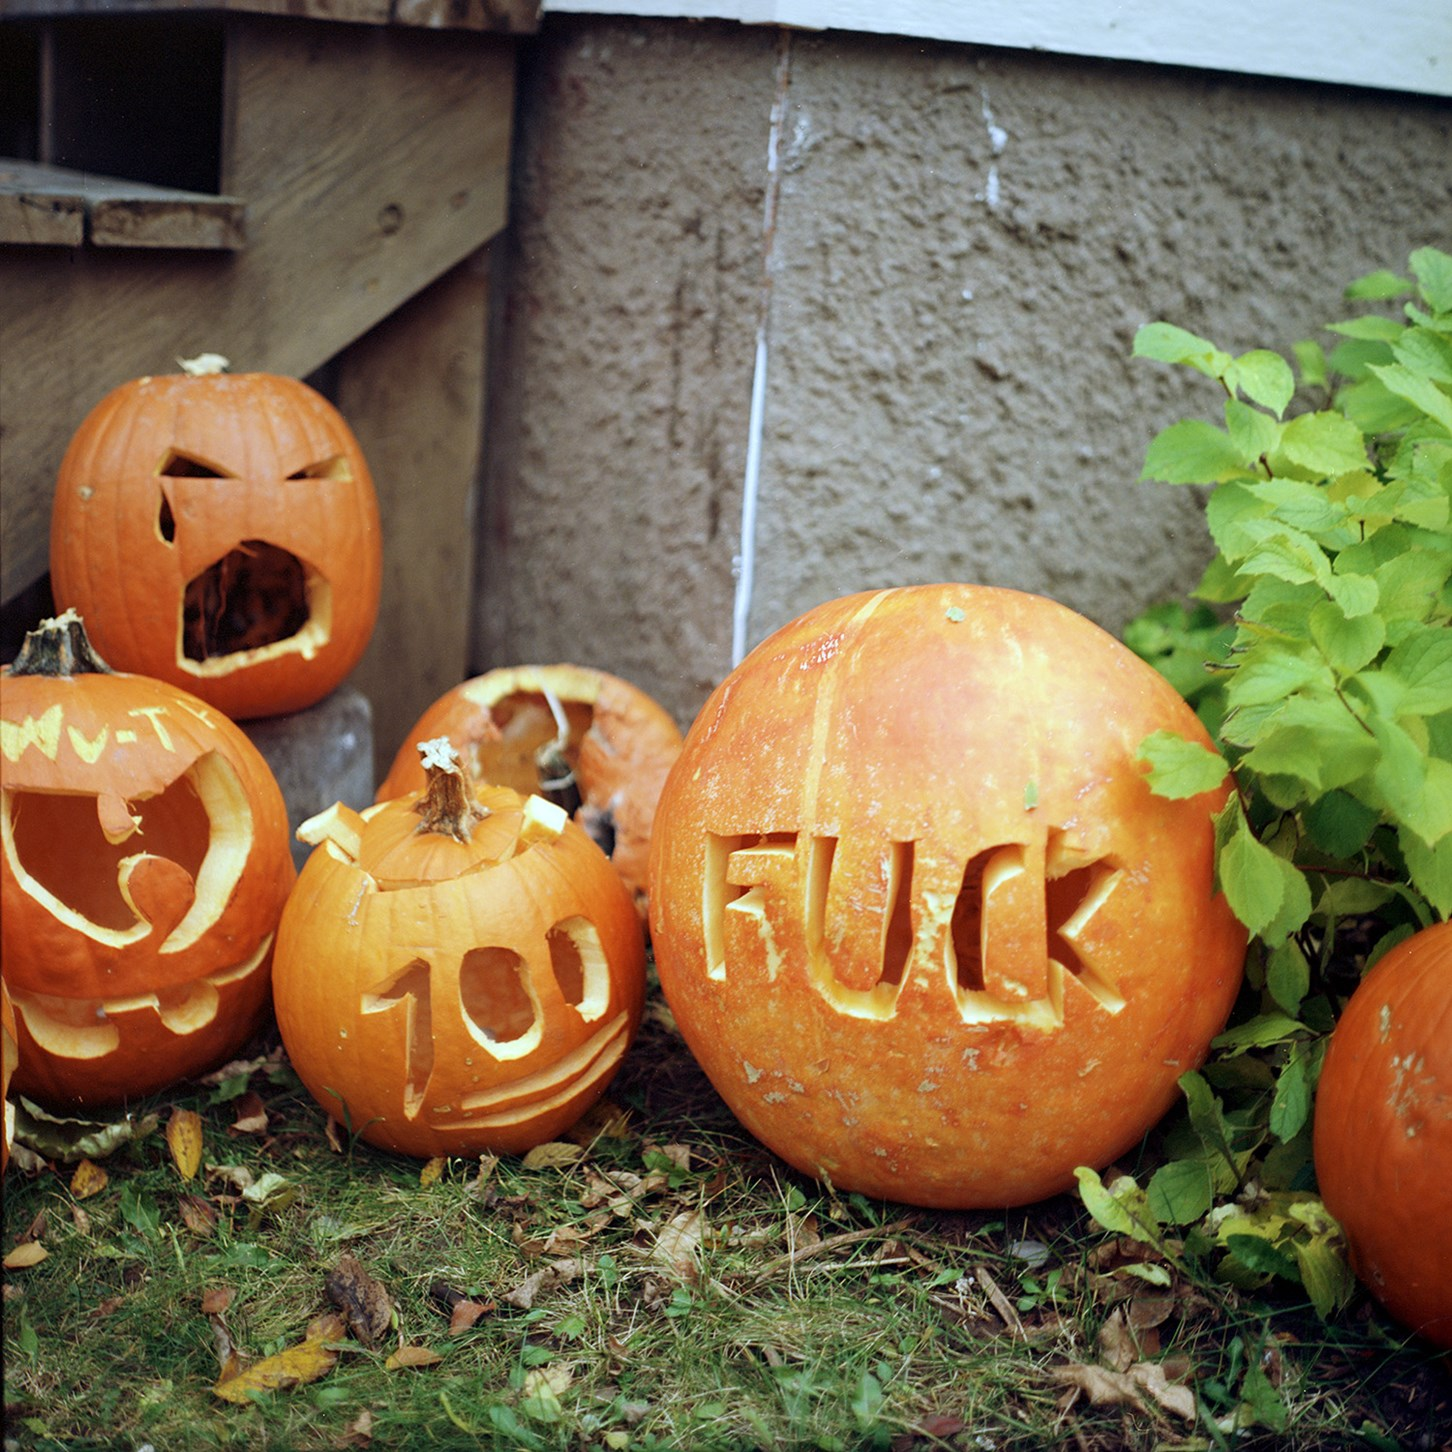 Fuck Pumpkin, Duluth, Minnesota, October 2015